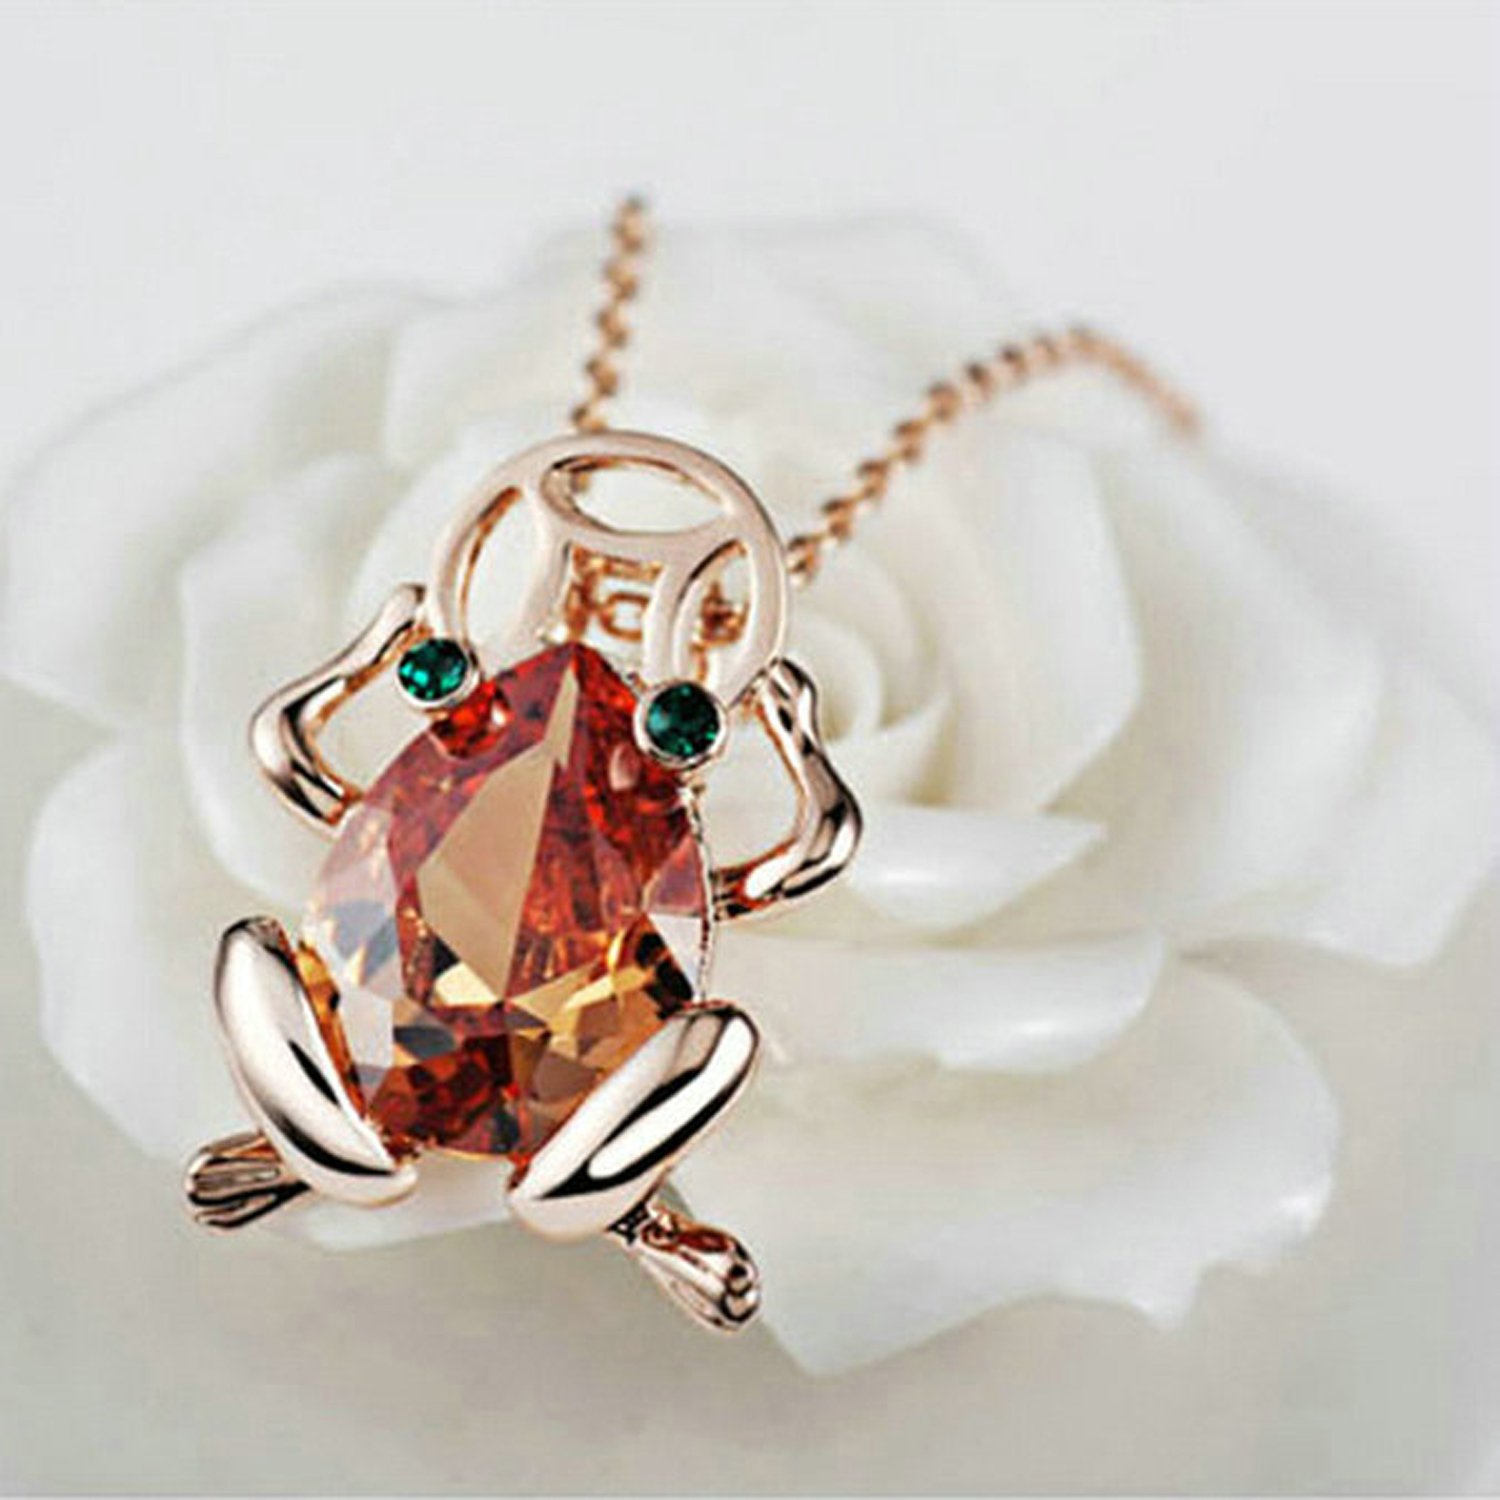 Yoursfs Stylish 18ct Rose Gold Plated Necklace with Green Crystals Eyes Frog Pendant Necklace 9cJbji